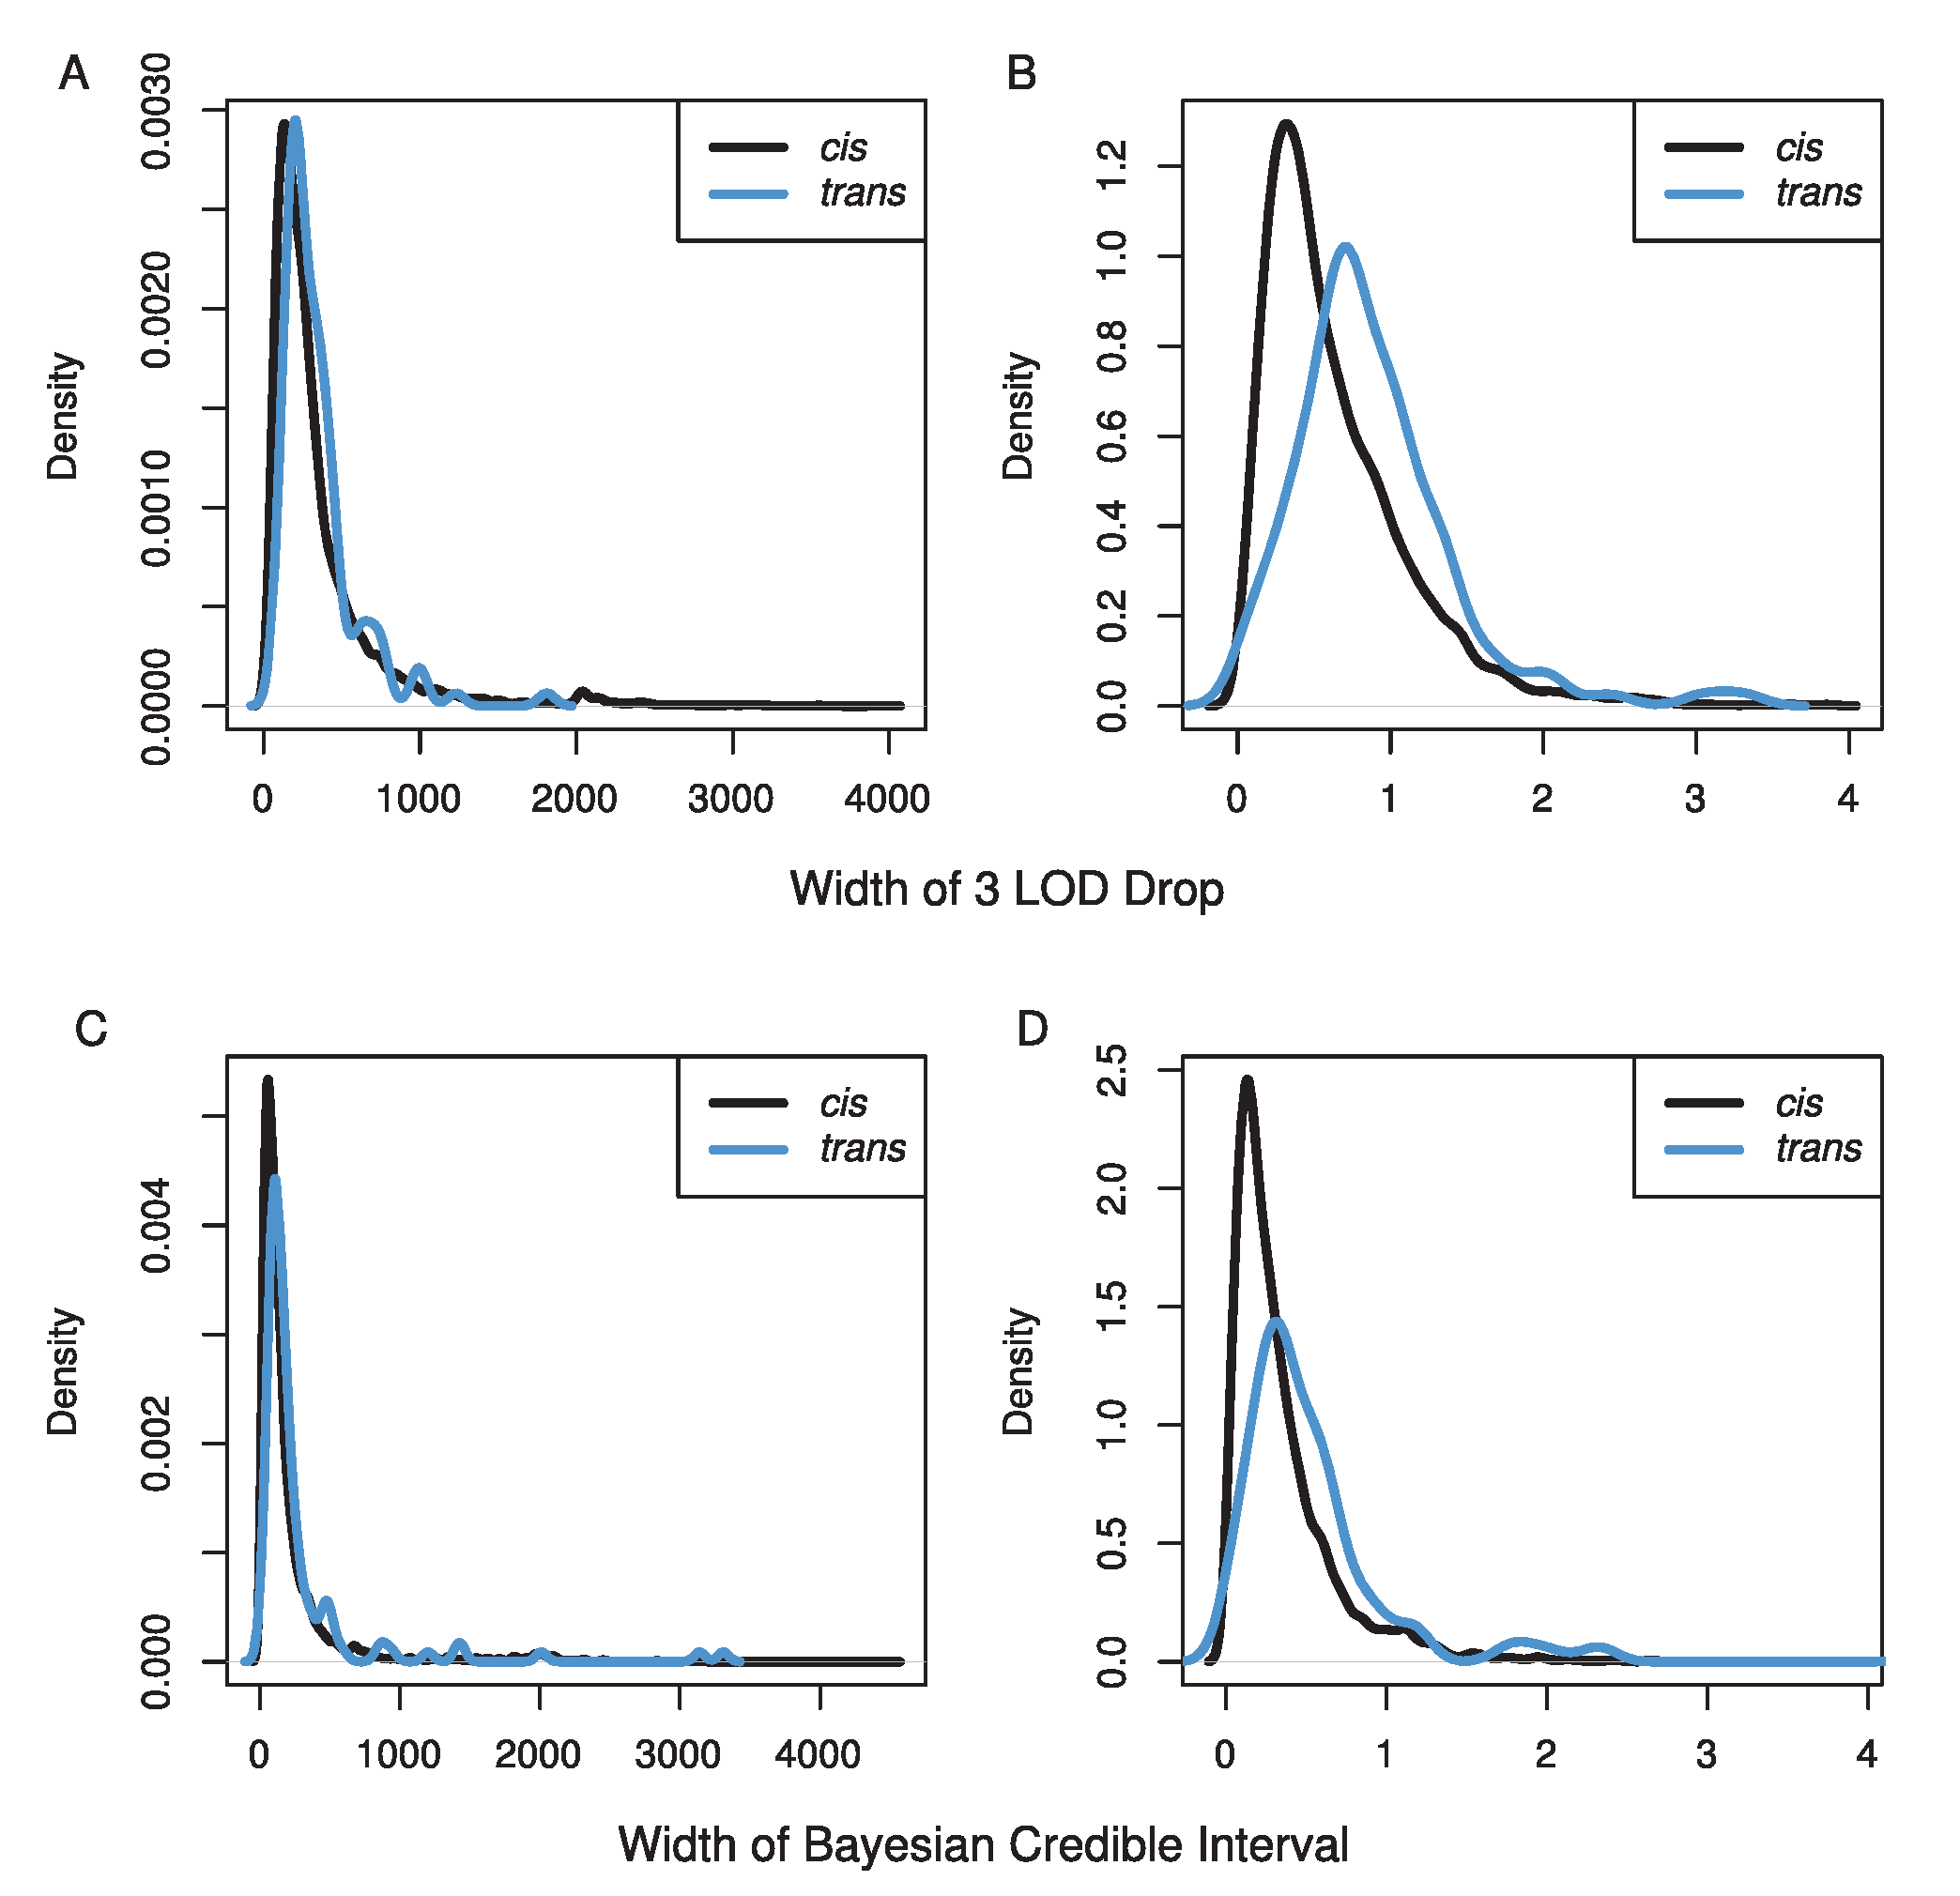 Distributions of the width of our confidence intervals for eQTL in A & C) physical distance (kb) and B & D) genetic distance (cM) using either a 3 LOD drop (A & B) or the Bayesian credible interval (C & D).